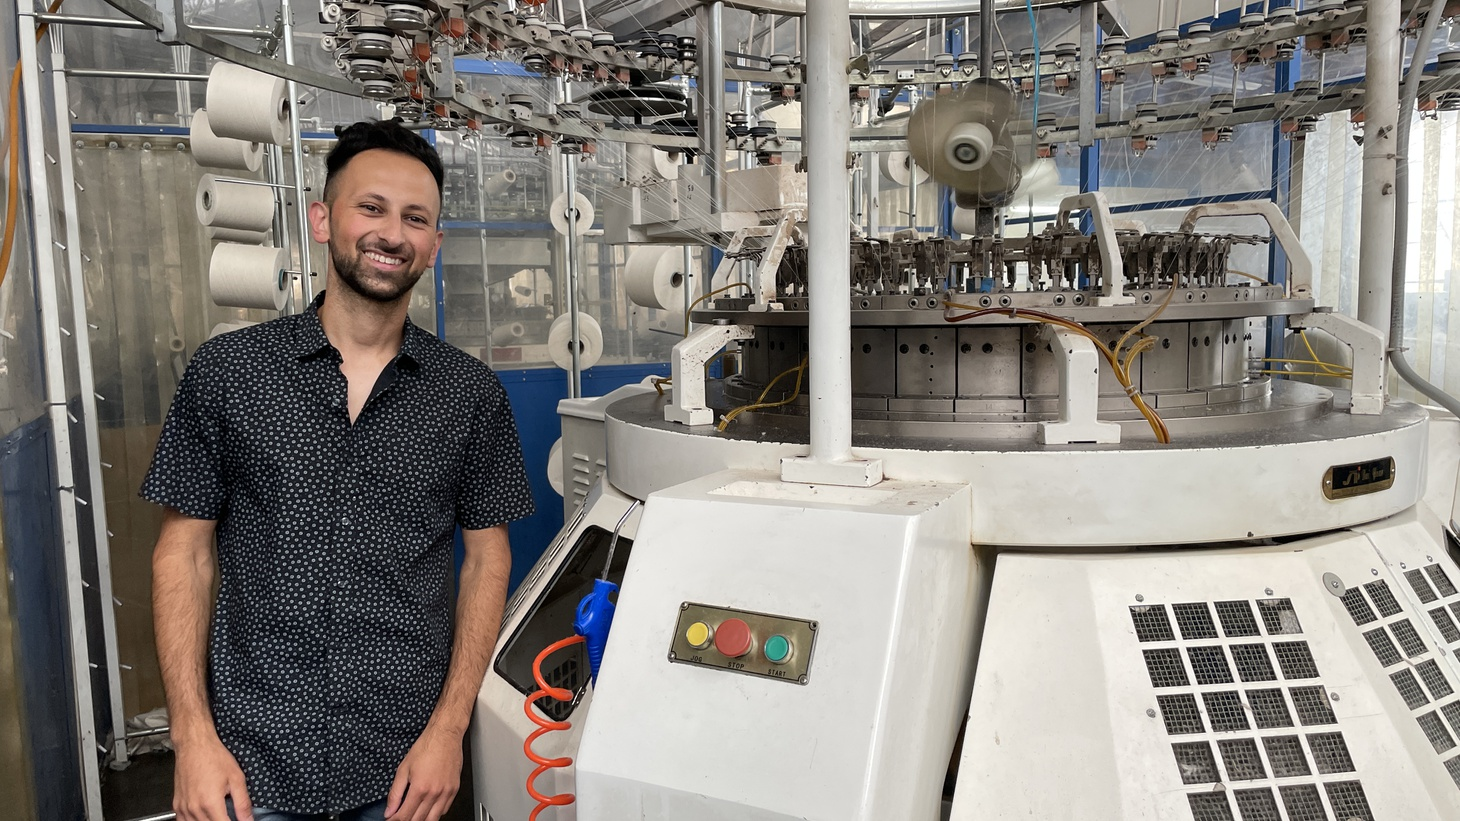 """Sean Zahedi stands next to one of his knitting machines at Lafayette Textiles in Vernon. """"My father used to have his own dye house. But because of rising labor costs, environmental regulations and water, it moved to Nicaragua,"""" he says."""